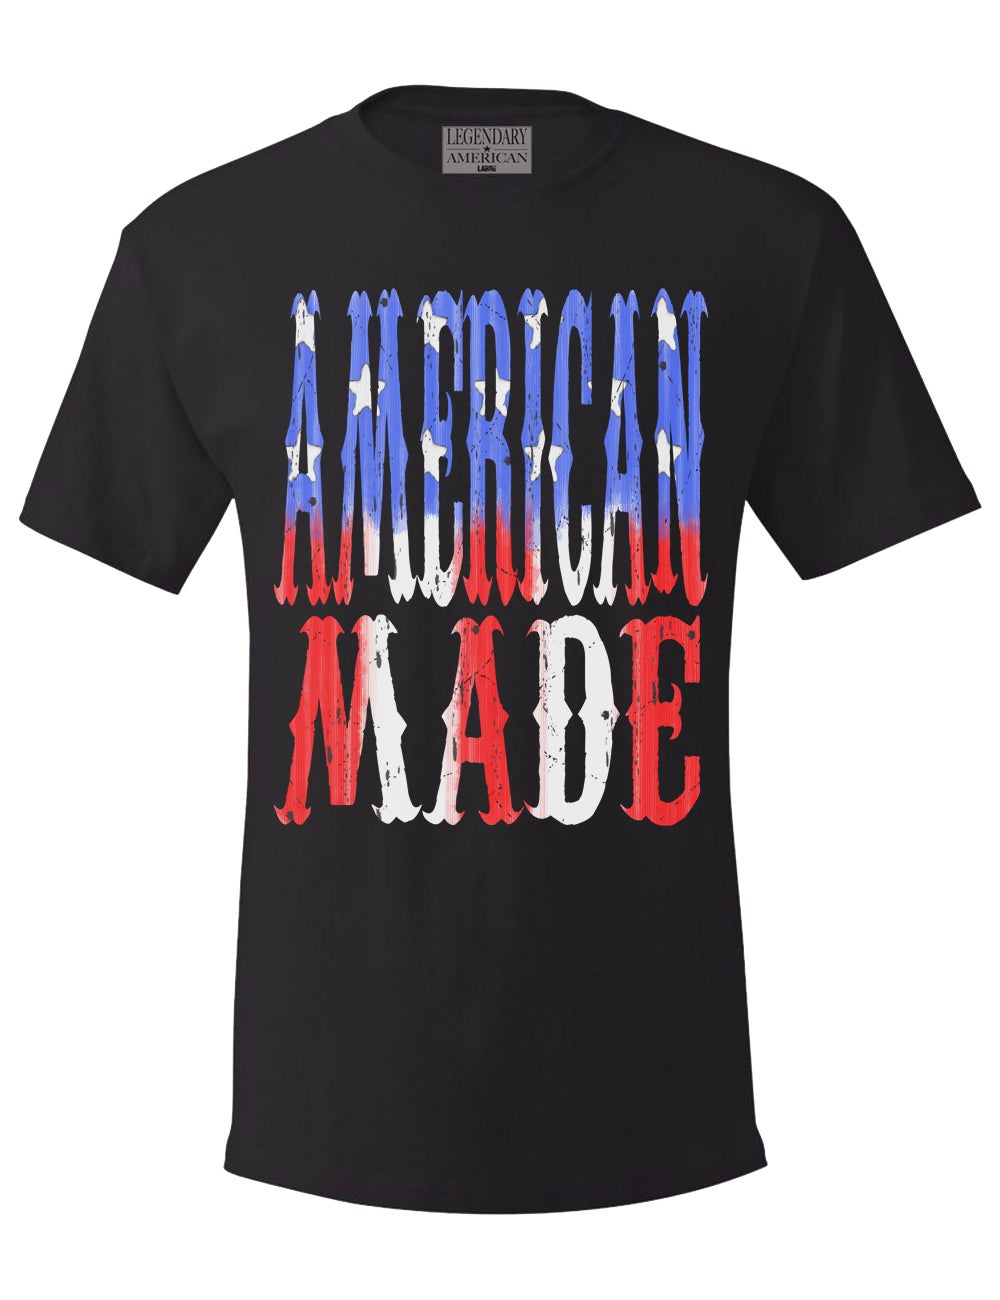 Image of Legendary American American Made Tee